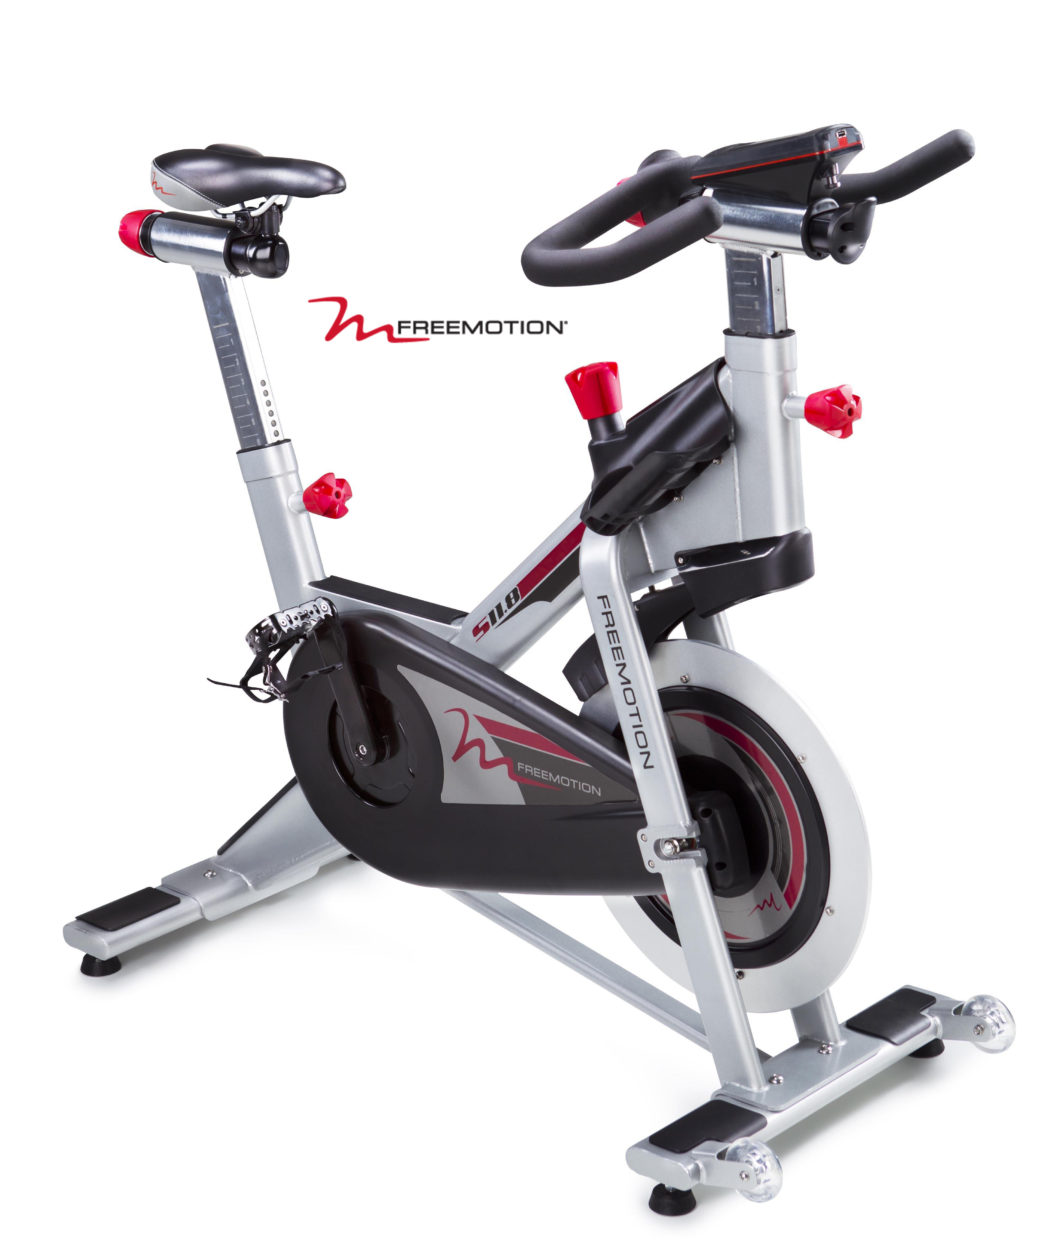 https://www.indoorcycling.org/magazin/wp-content/uploads/2016/11/freemotion-fitness-1050x1253.jpg